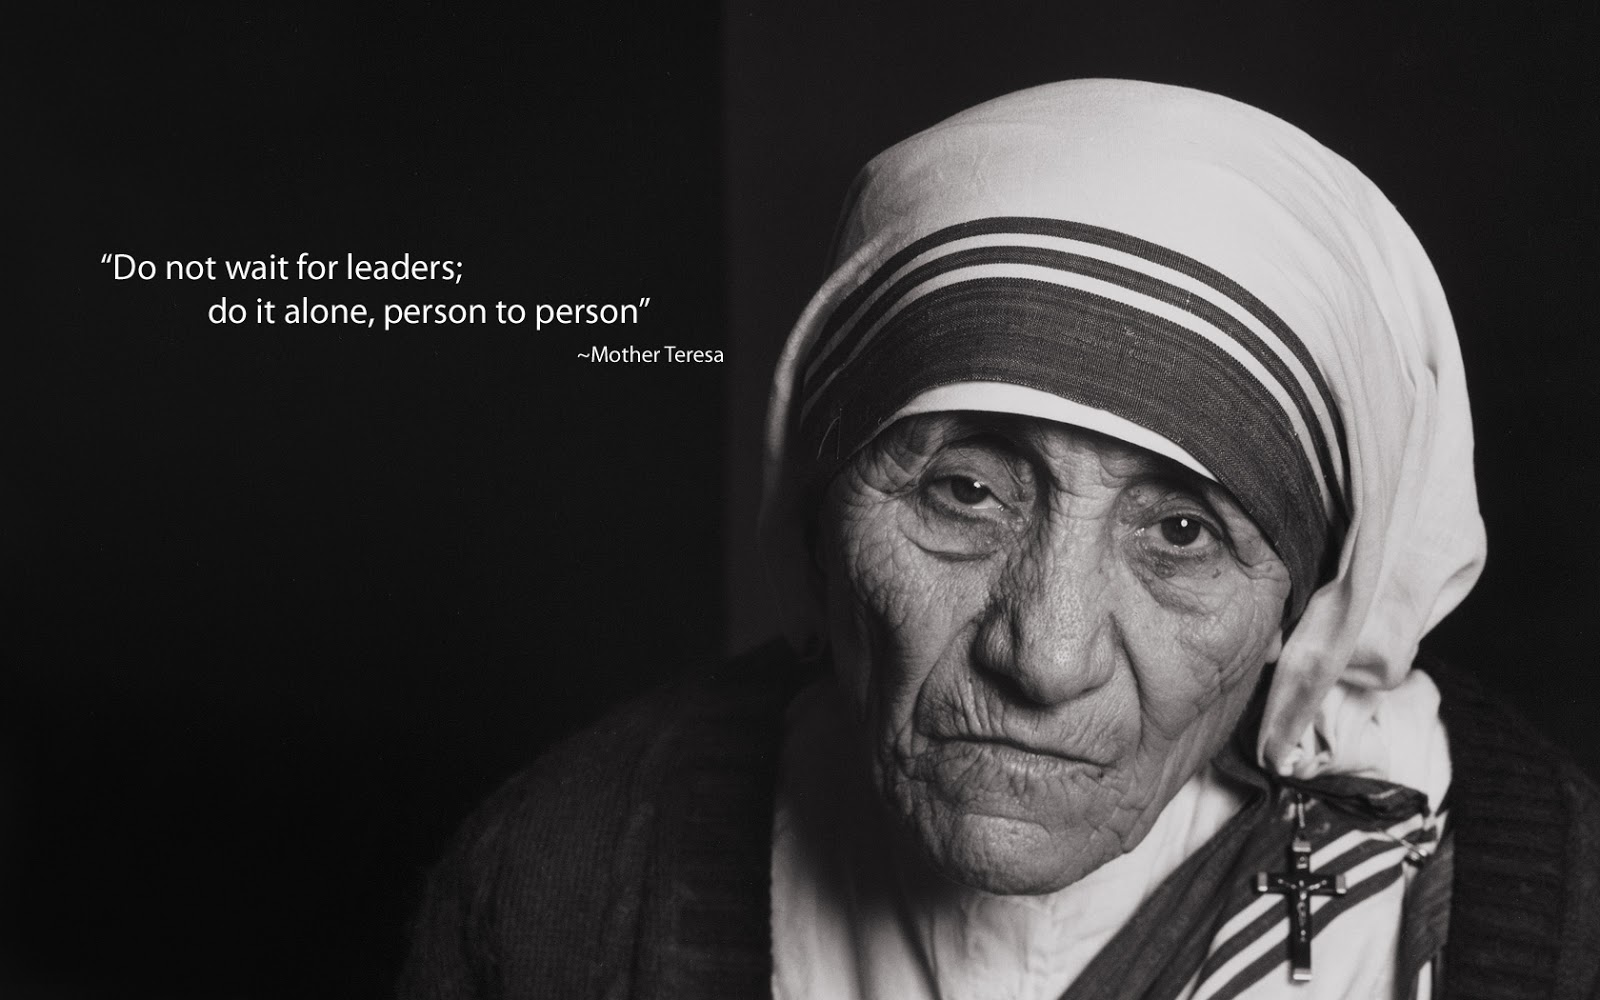 Essay on my role model mother teresa